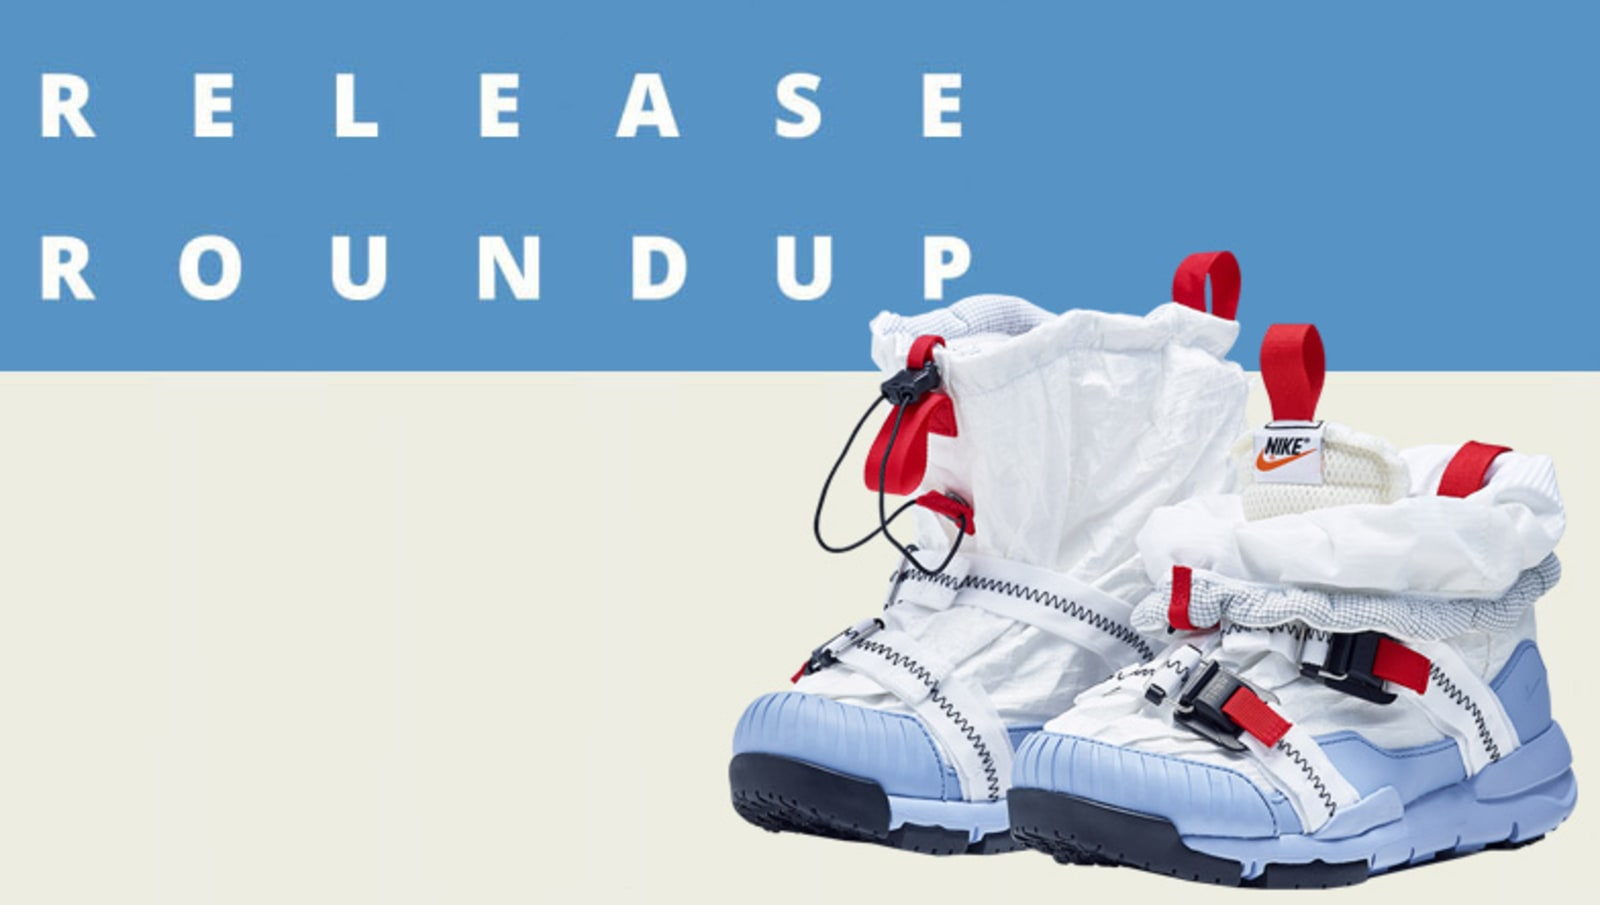 b60eae780e9 For this week's Release Roundup, Michael Jordan's final on-court sneaker is  making a return in OG form with the